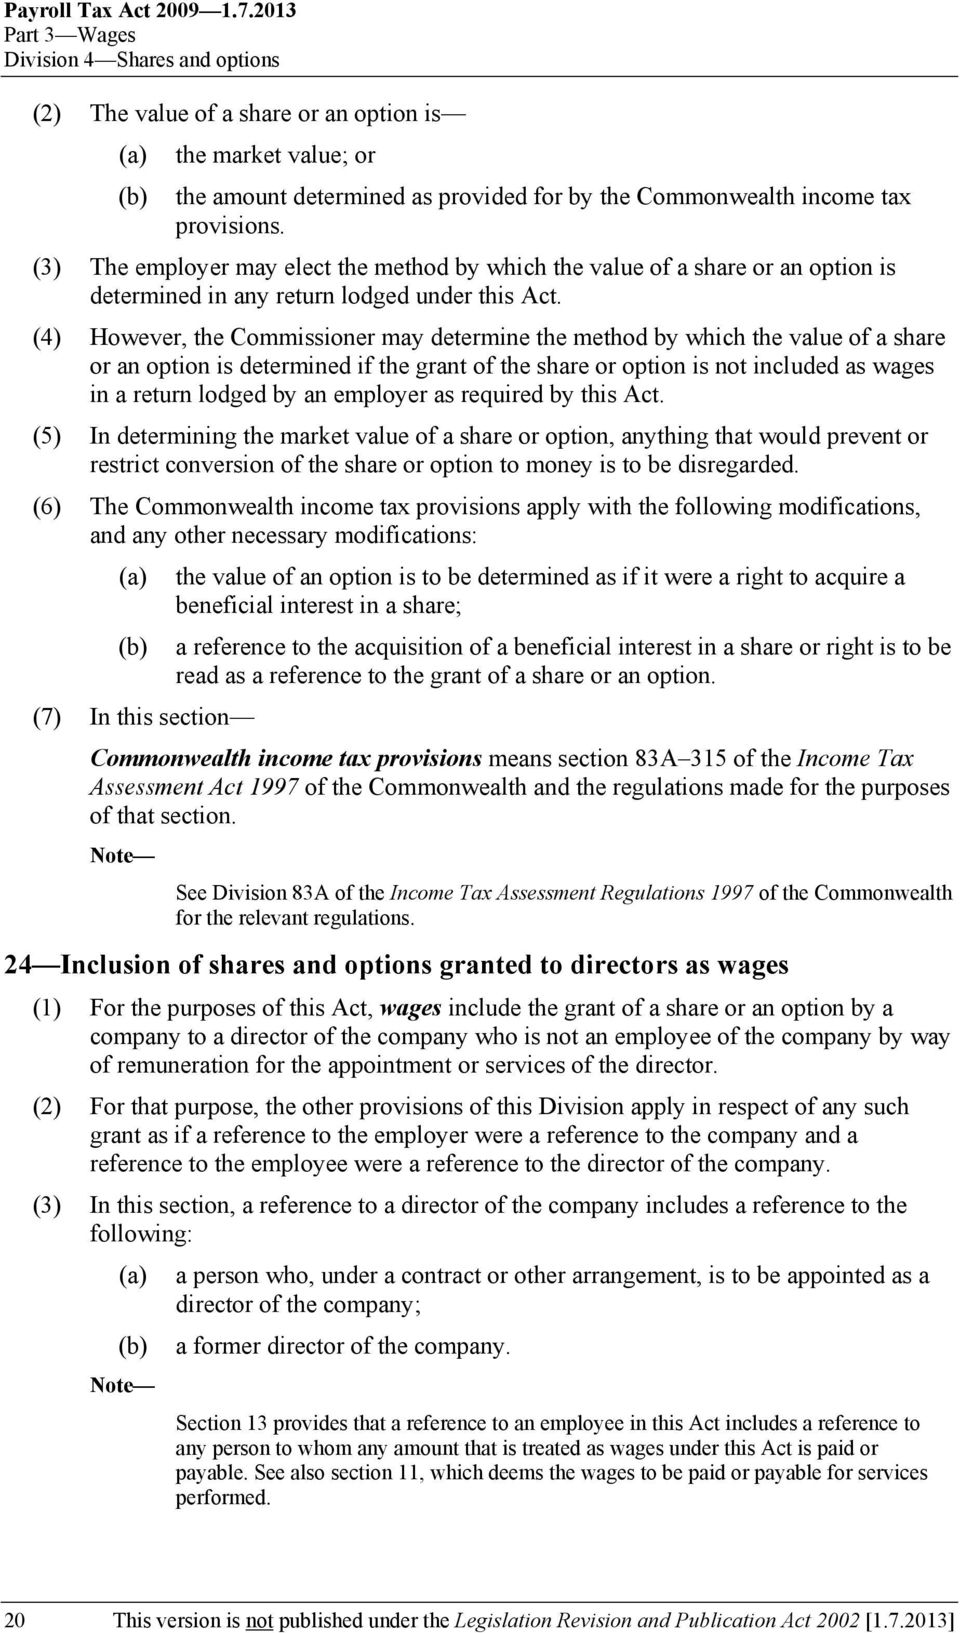 (3) The employer may elect the method by which the value of a share or an option is determined in any return lodged under this Act.